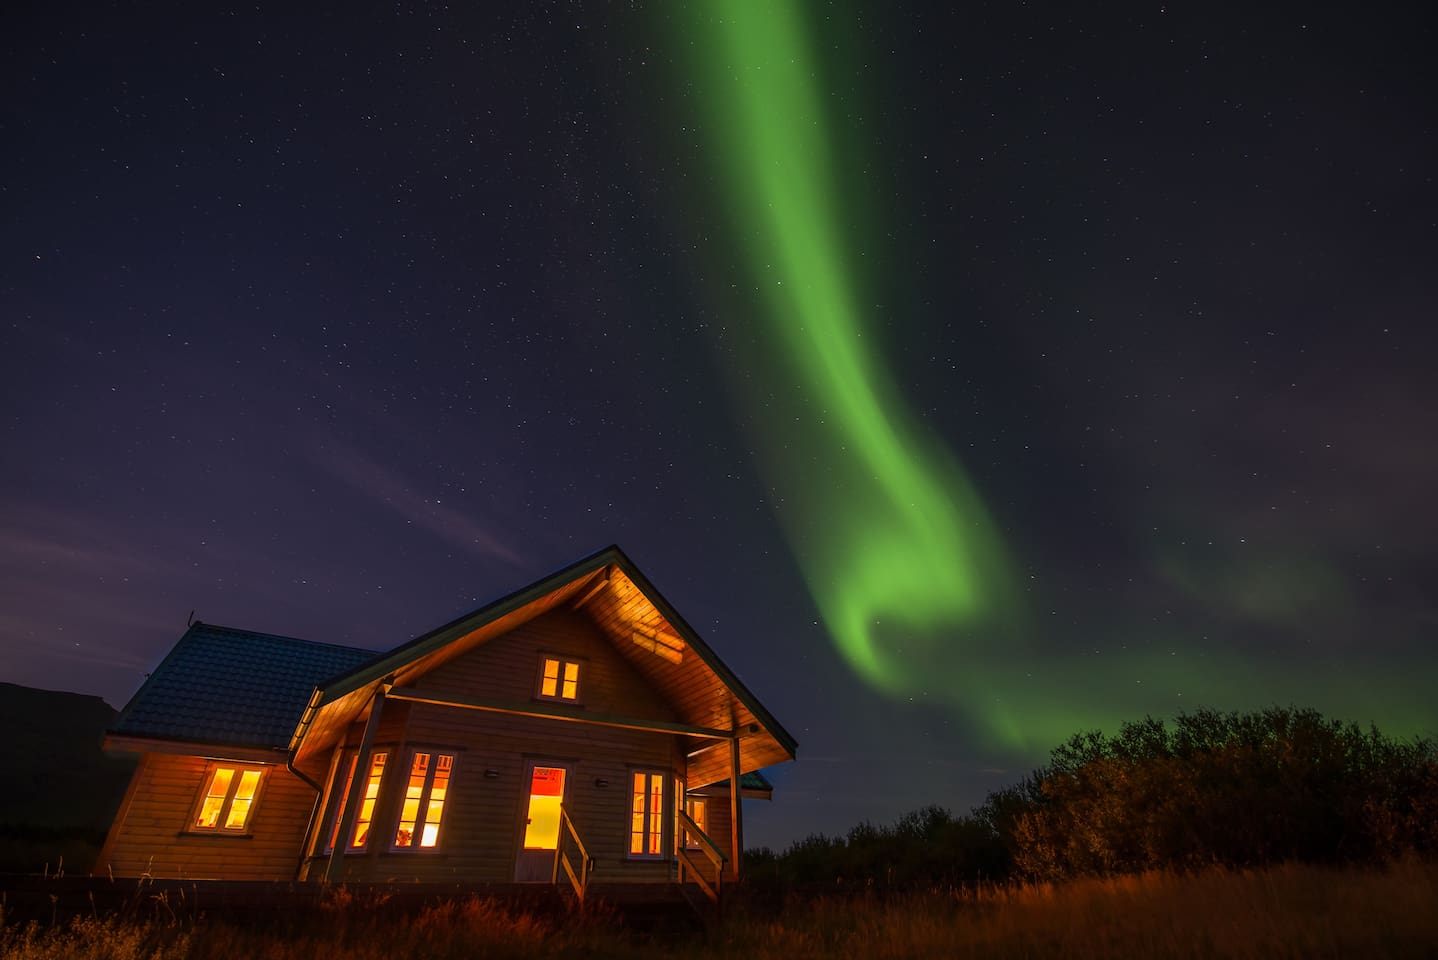 The house and the northern lights - not edited !!